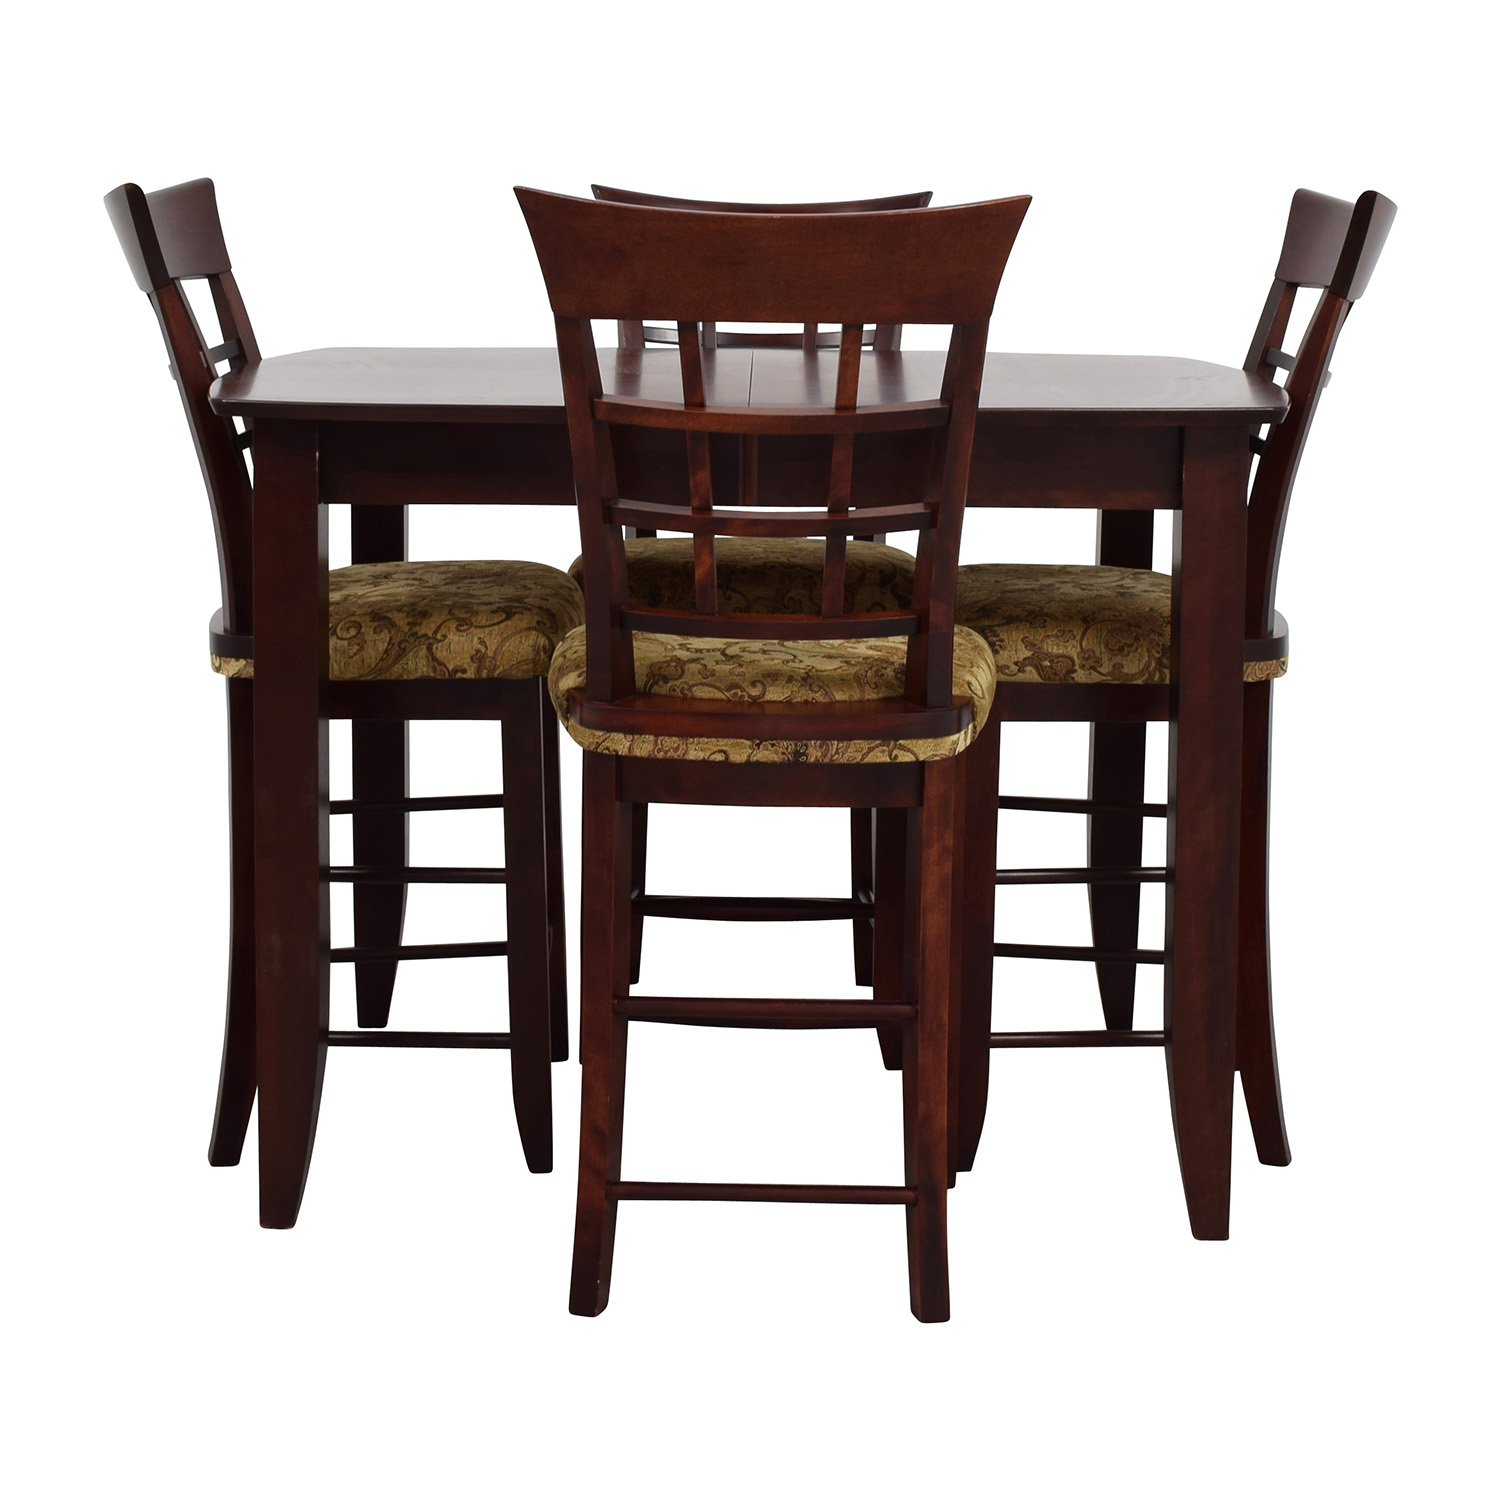 High Table With Stools: High Top Dining Table With Four Chairs / Tables